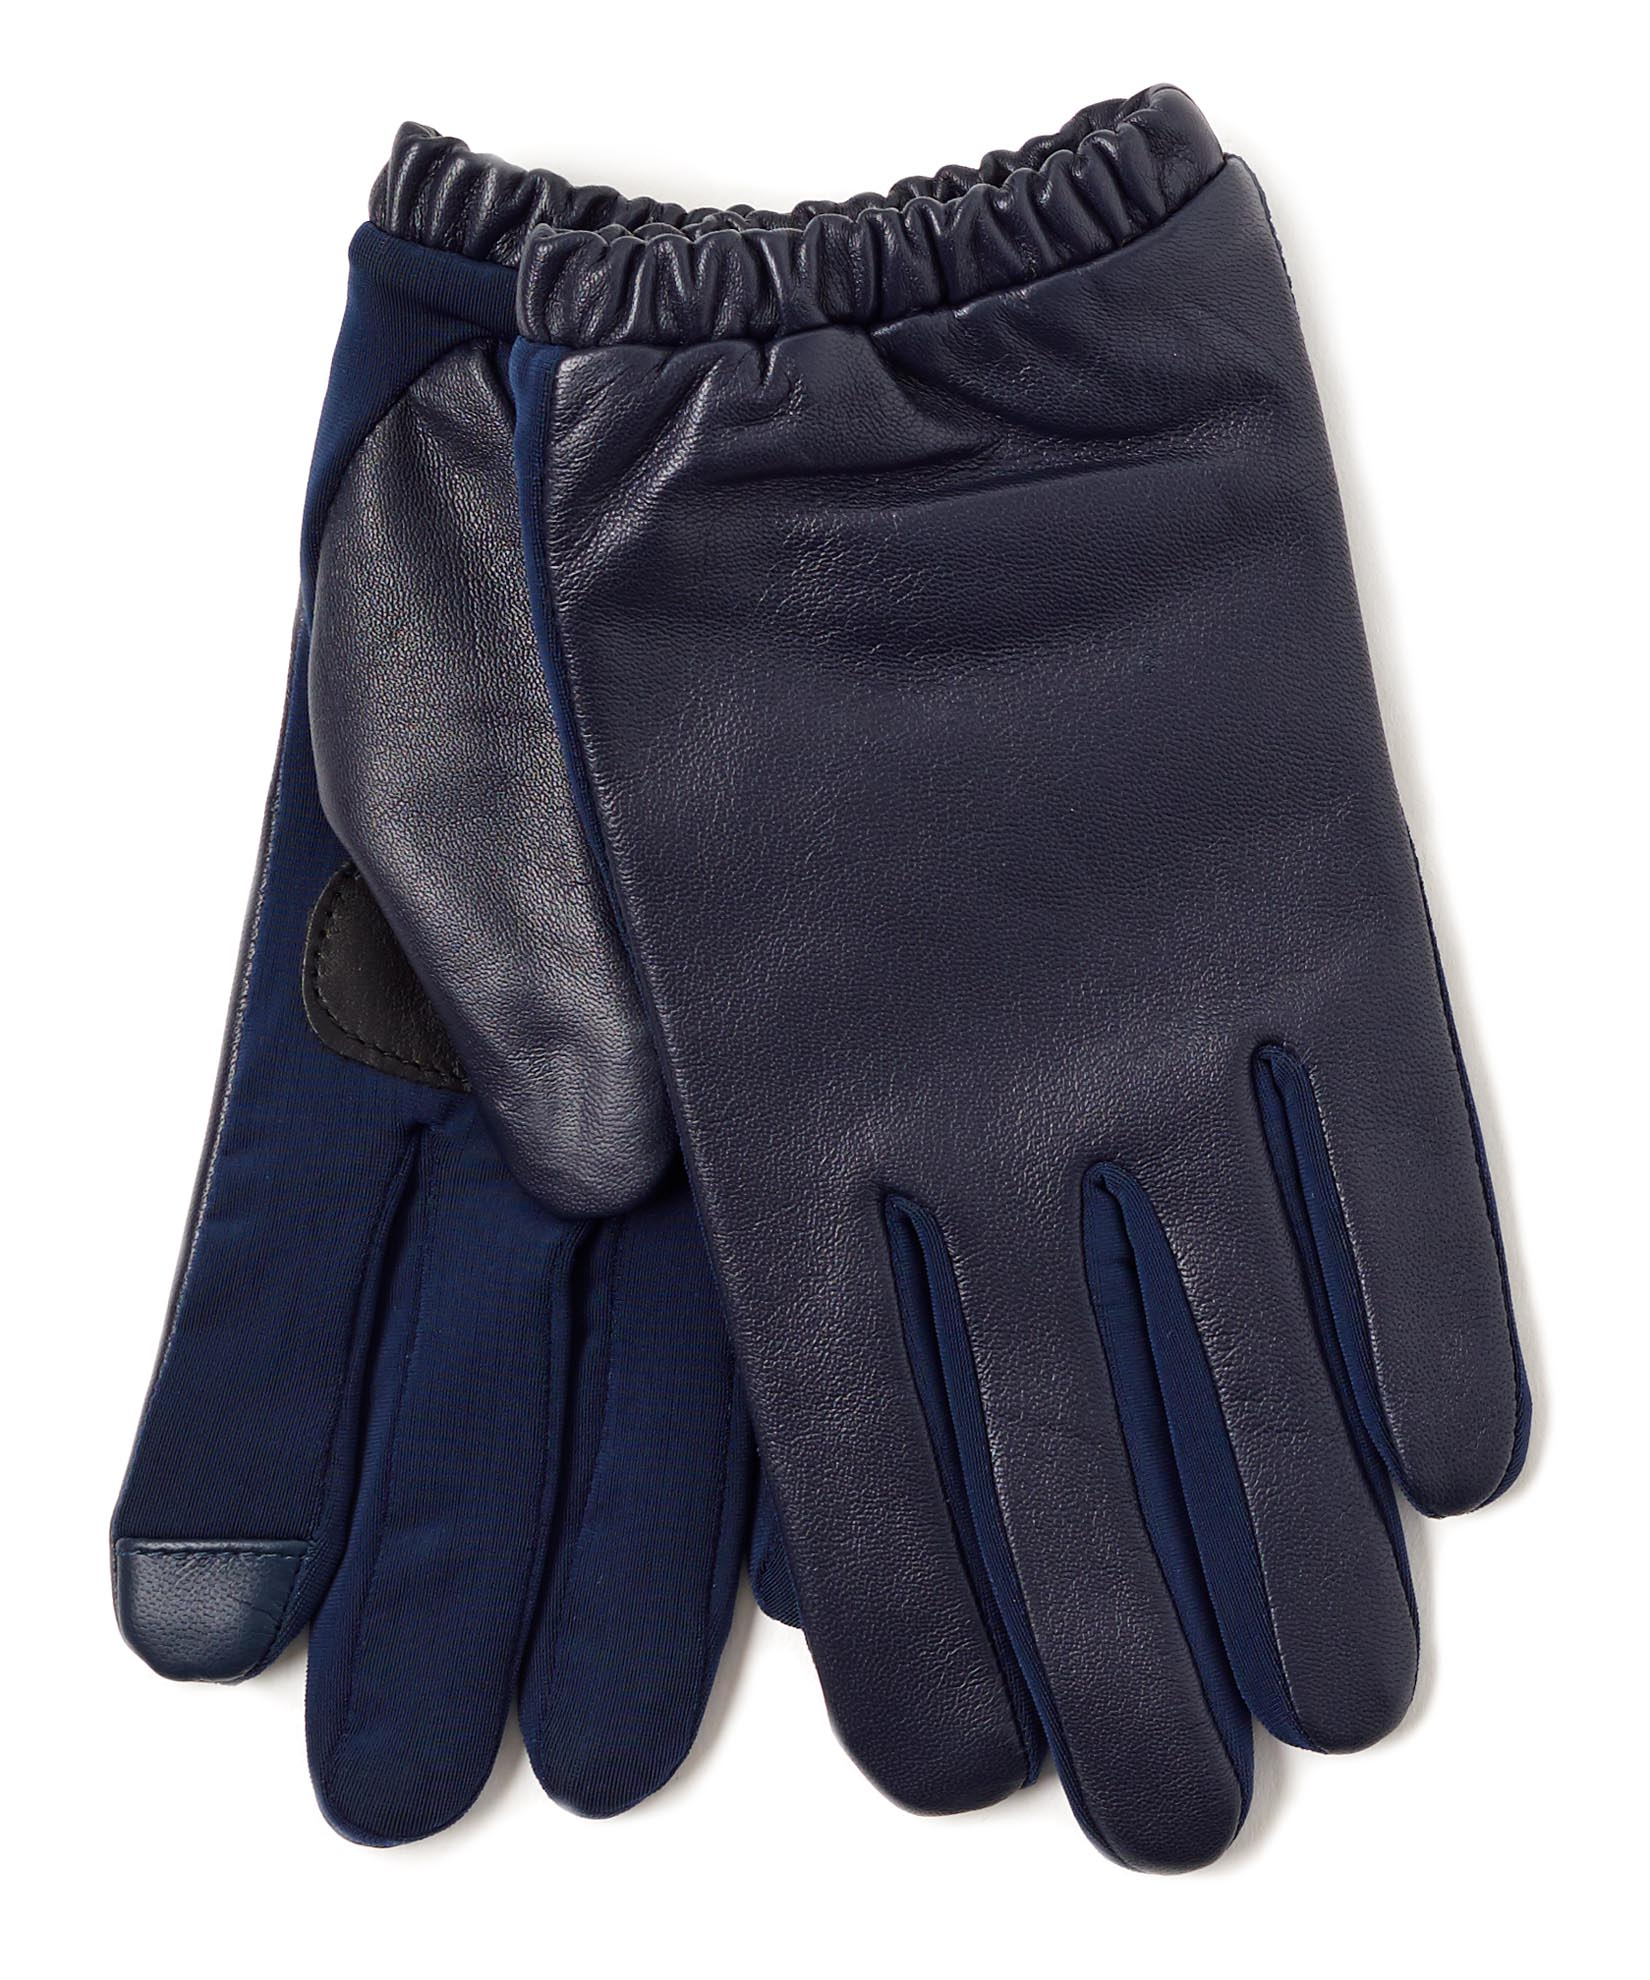 Maritime Navy - Everyday Superfit Glove